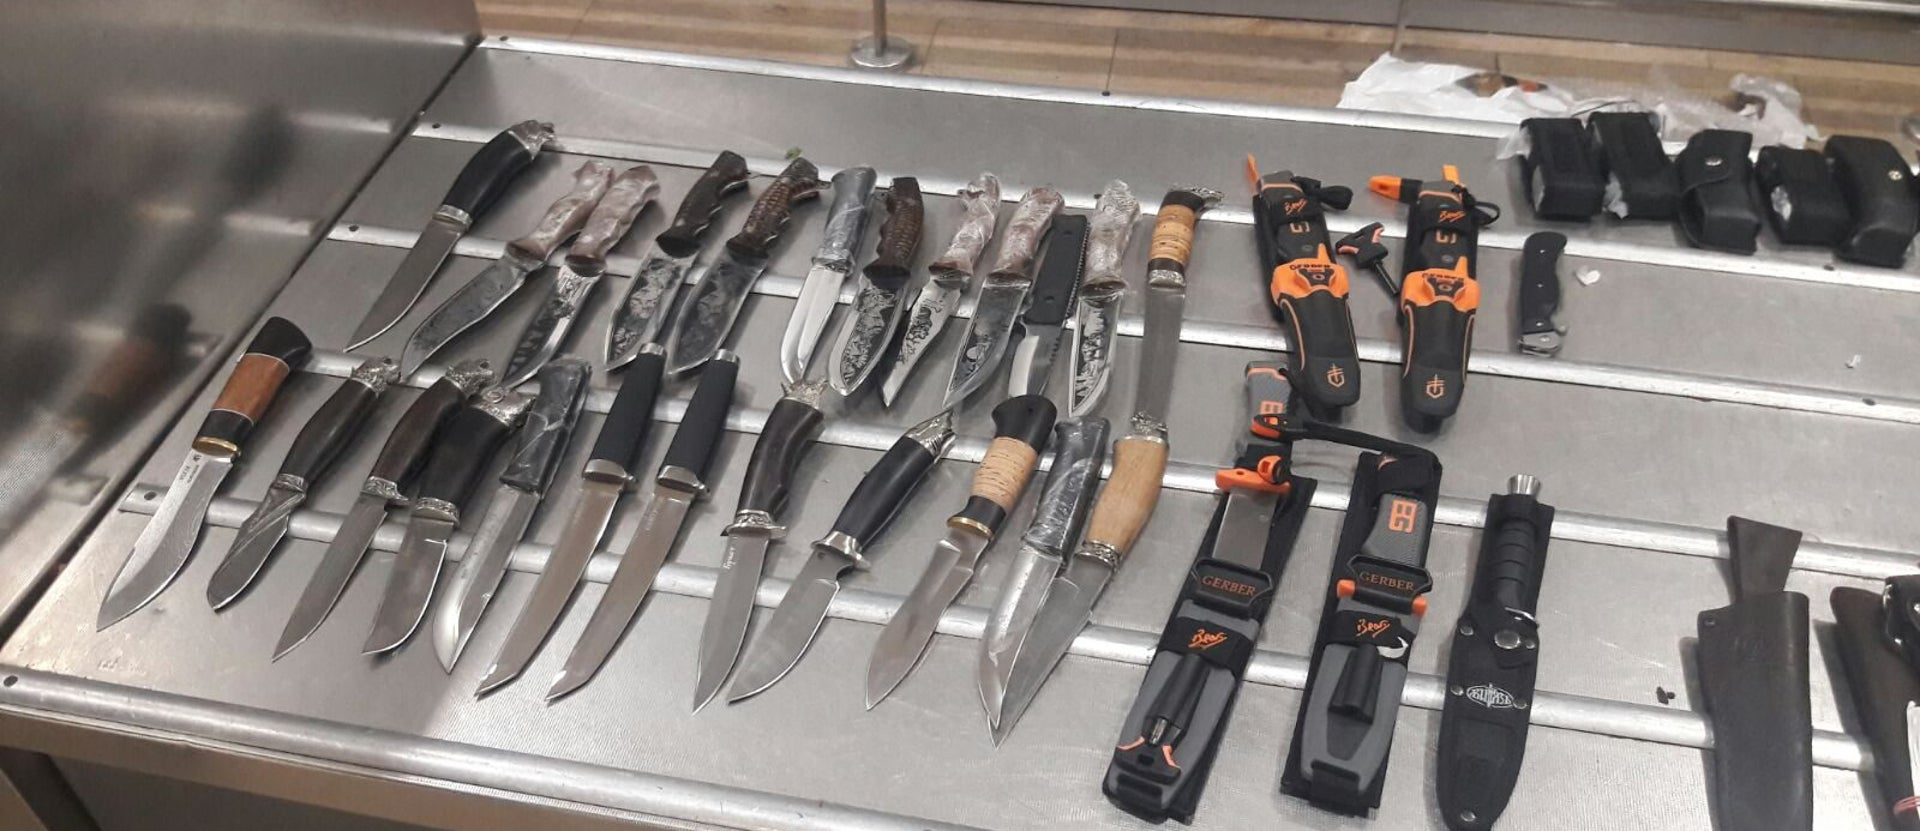 Need a knife? Attend a Customs Authority monthly auction, where you can find select confiscated knives and much, much more!